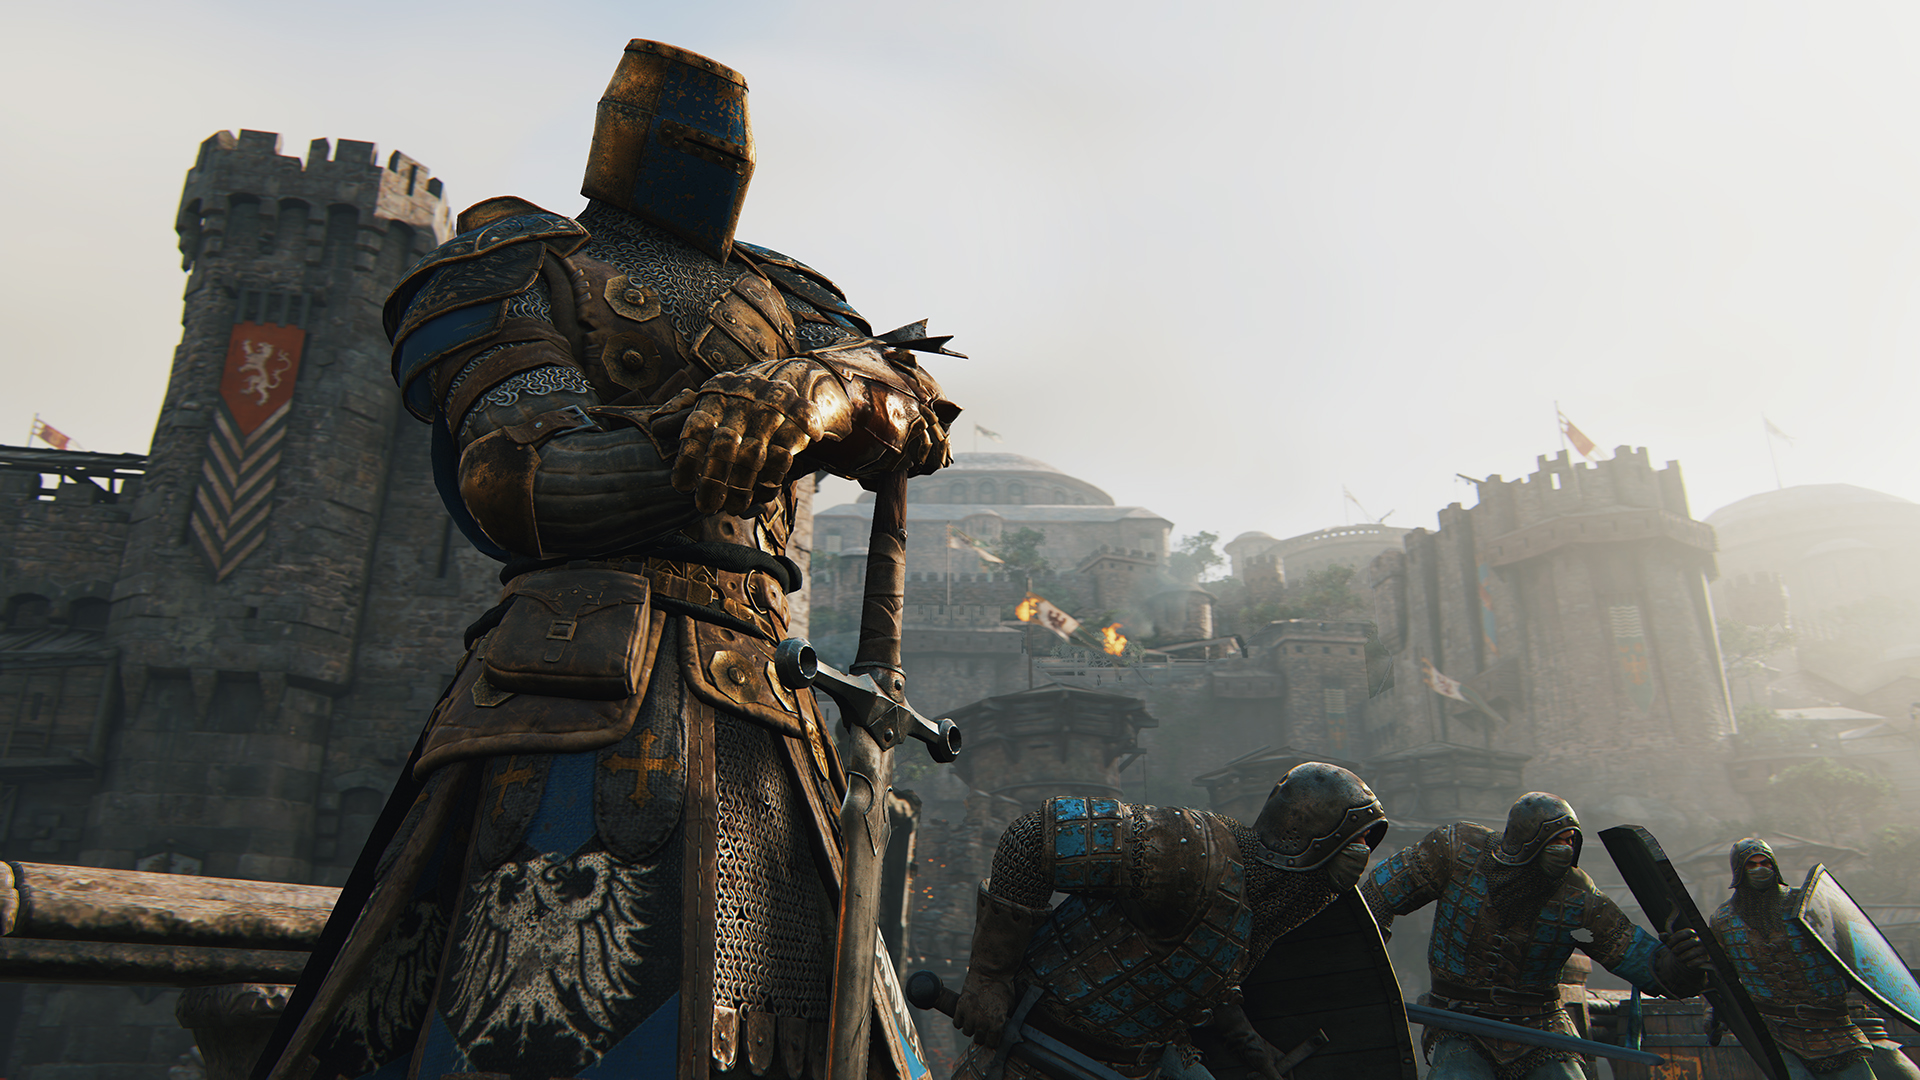 ubisoft giving for honor dedicated servers, two more content seasons